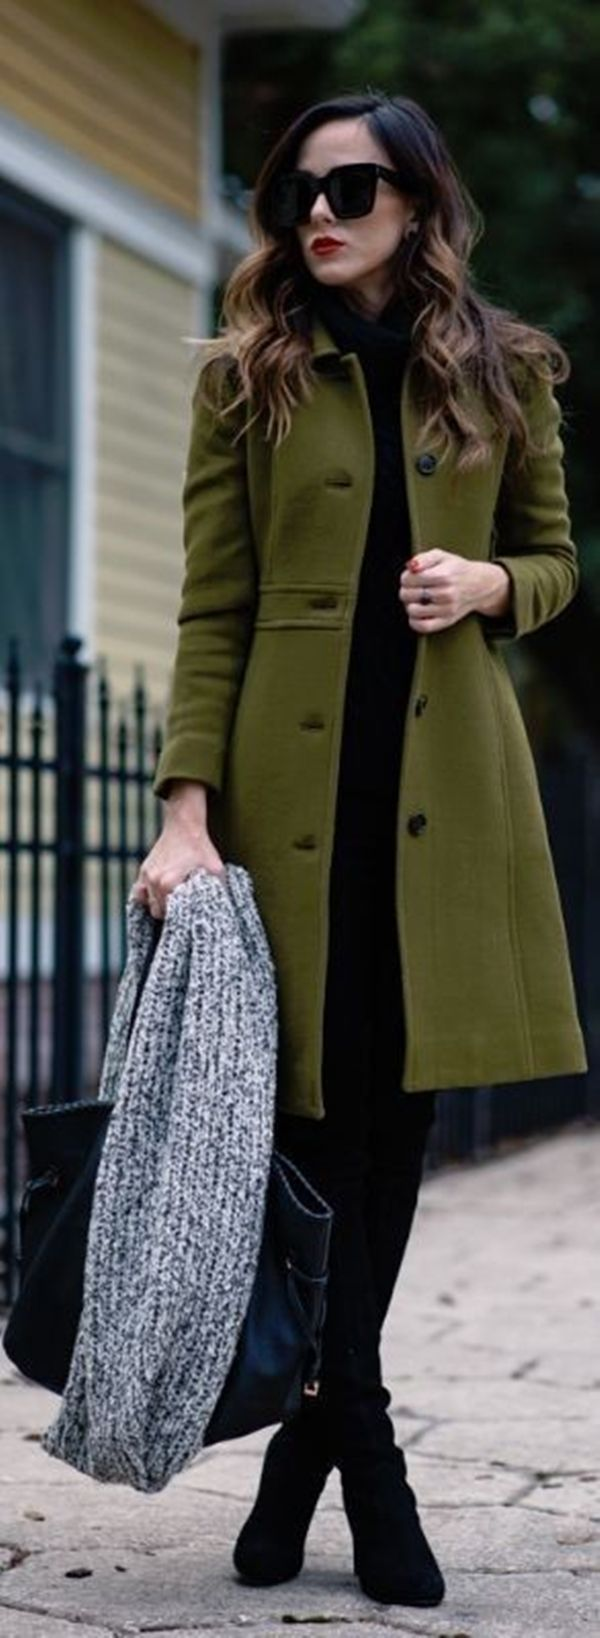 I own a coat in this same cut and color with gold buttons. Always looking for dr…